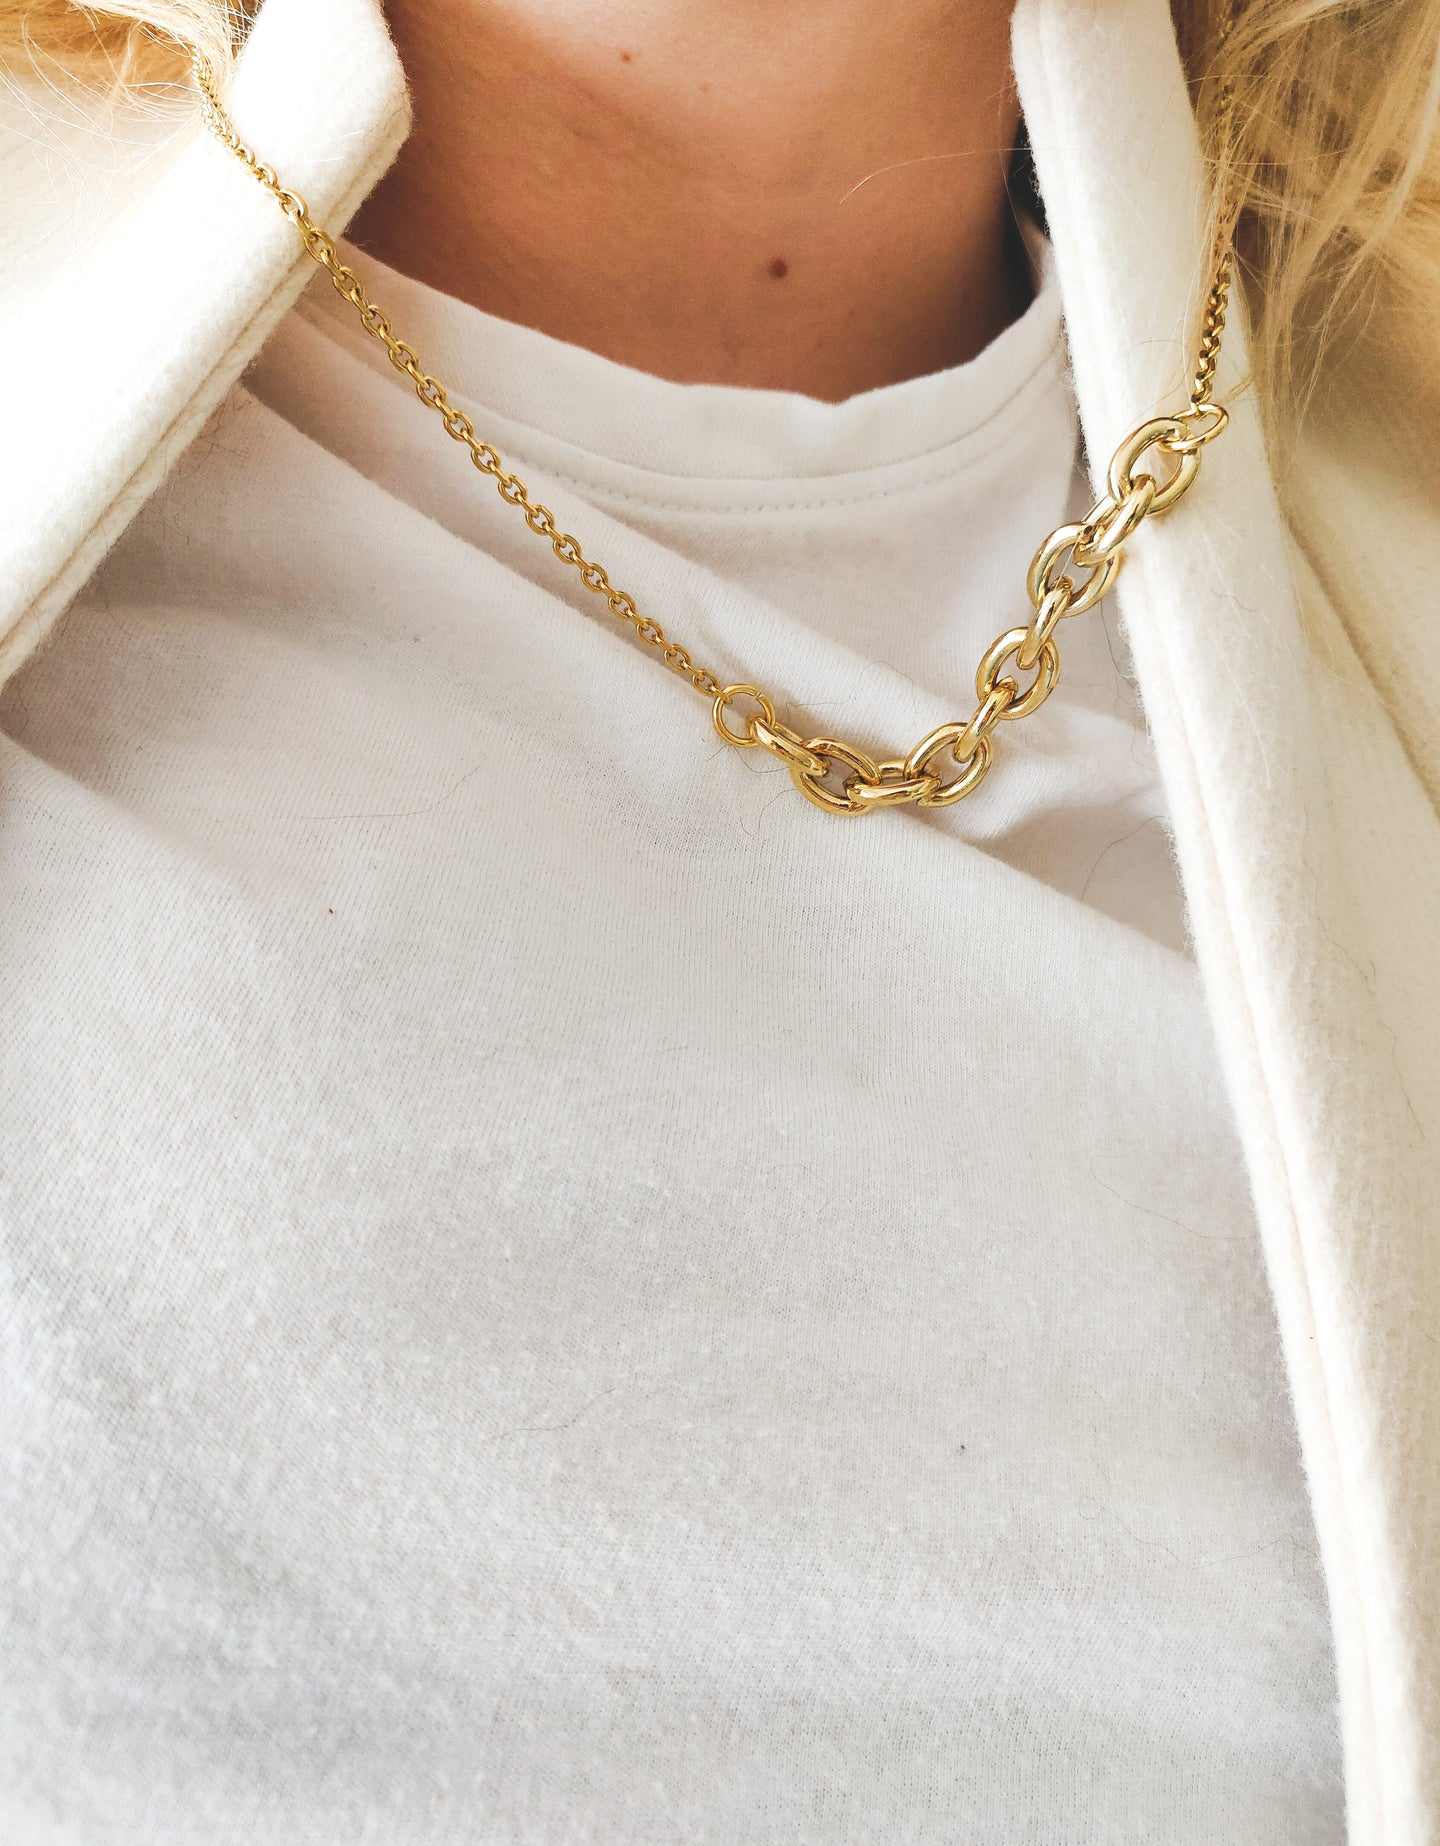 Chain on chain | stainless steel silver / gold necklace